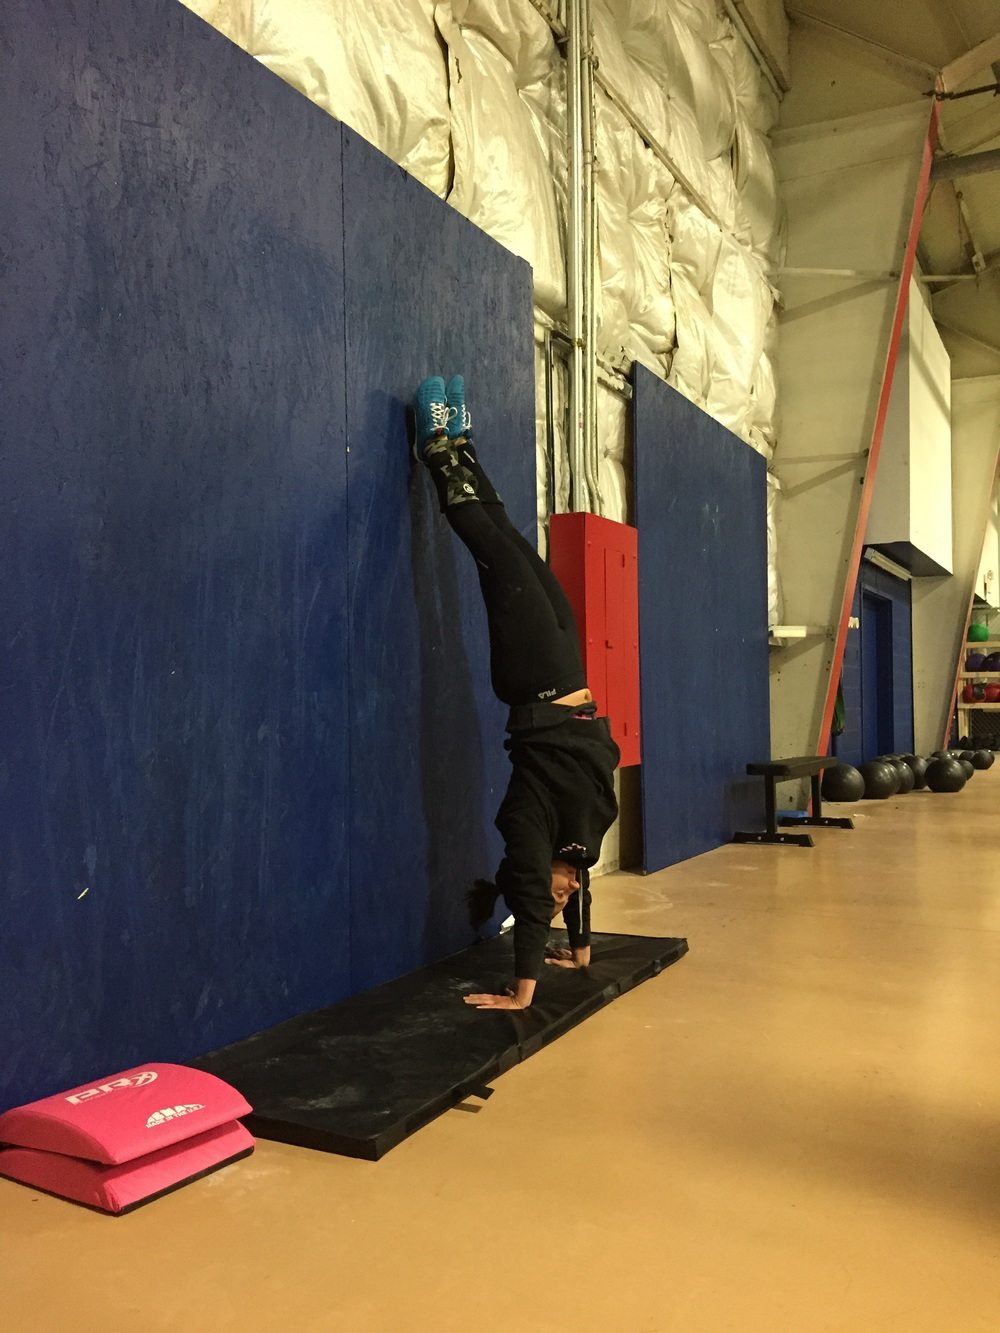 Kristen working on her handstand position.